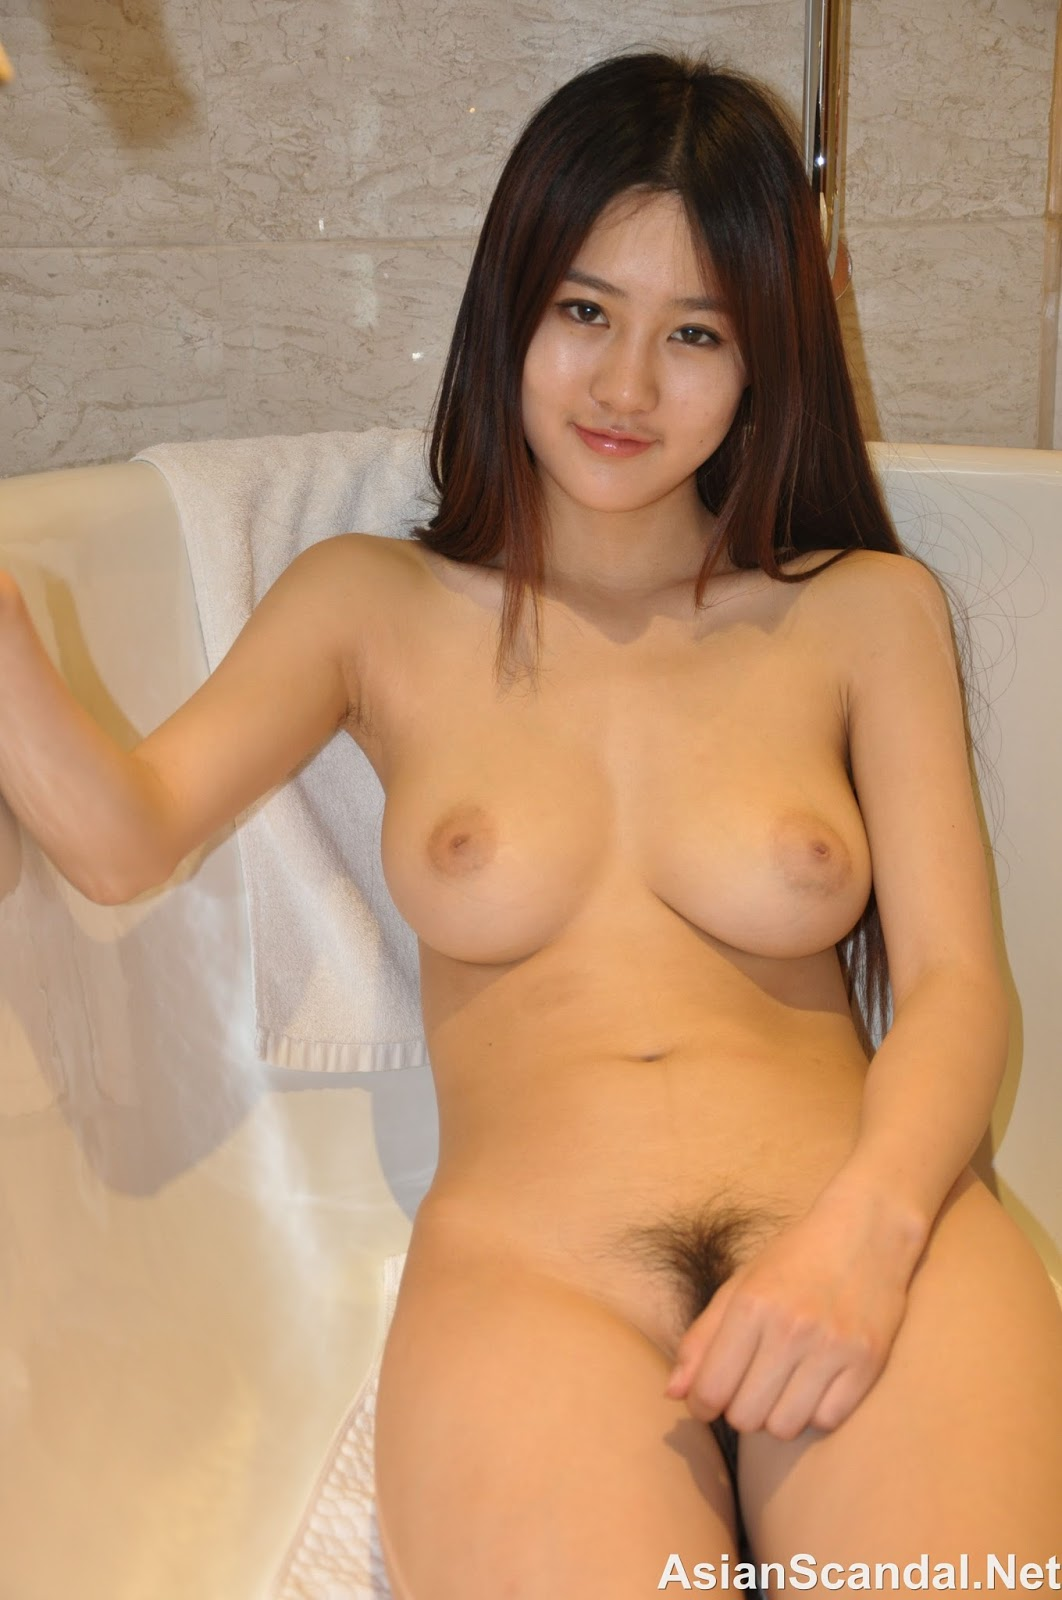 Koreans girls naked